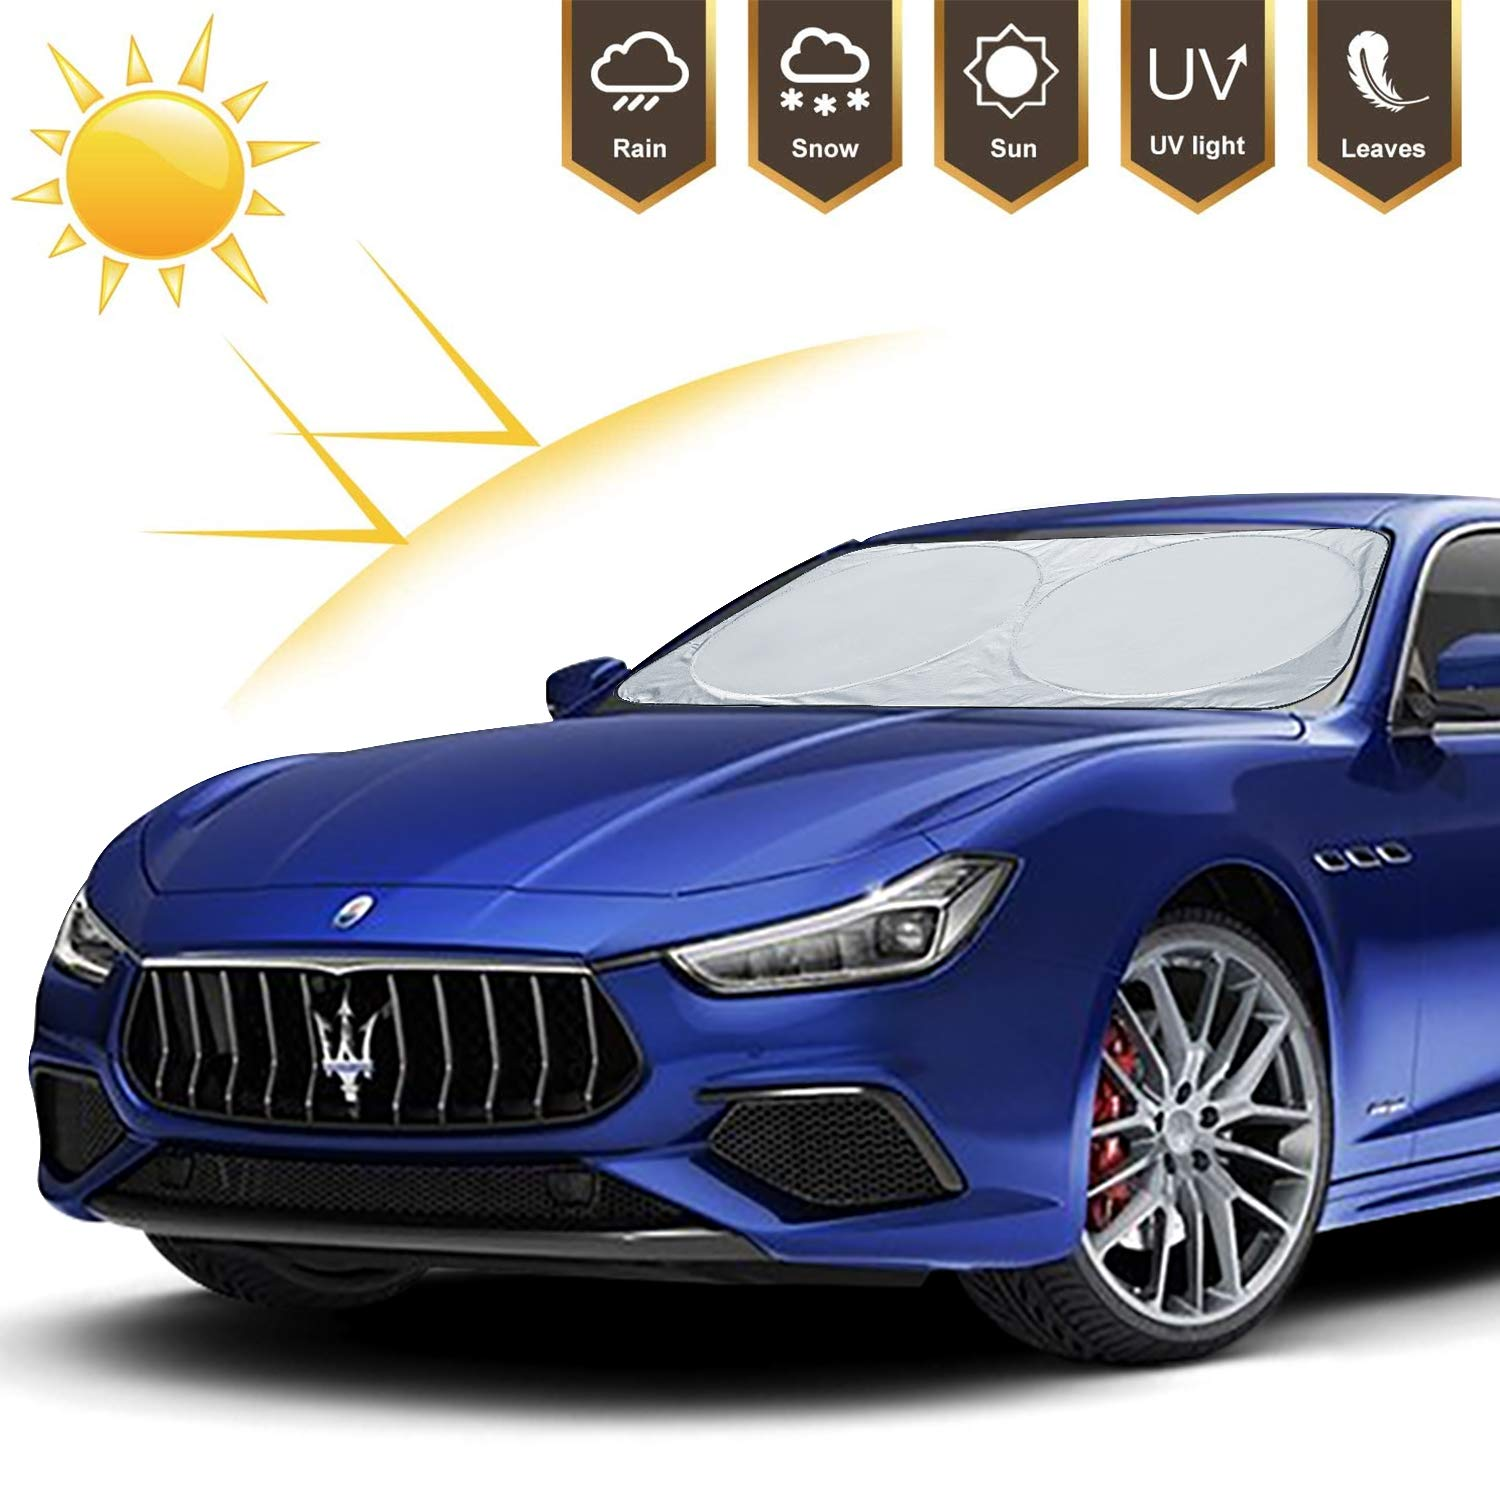 Adoric Life Car Windshield Sunshade Front Window, 500T Reflective Polyester Blocks Heat and Sun. UV Protector Shields Foldable & Keeps Vehicle Cooler